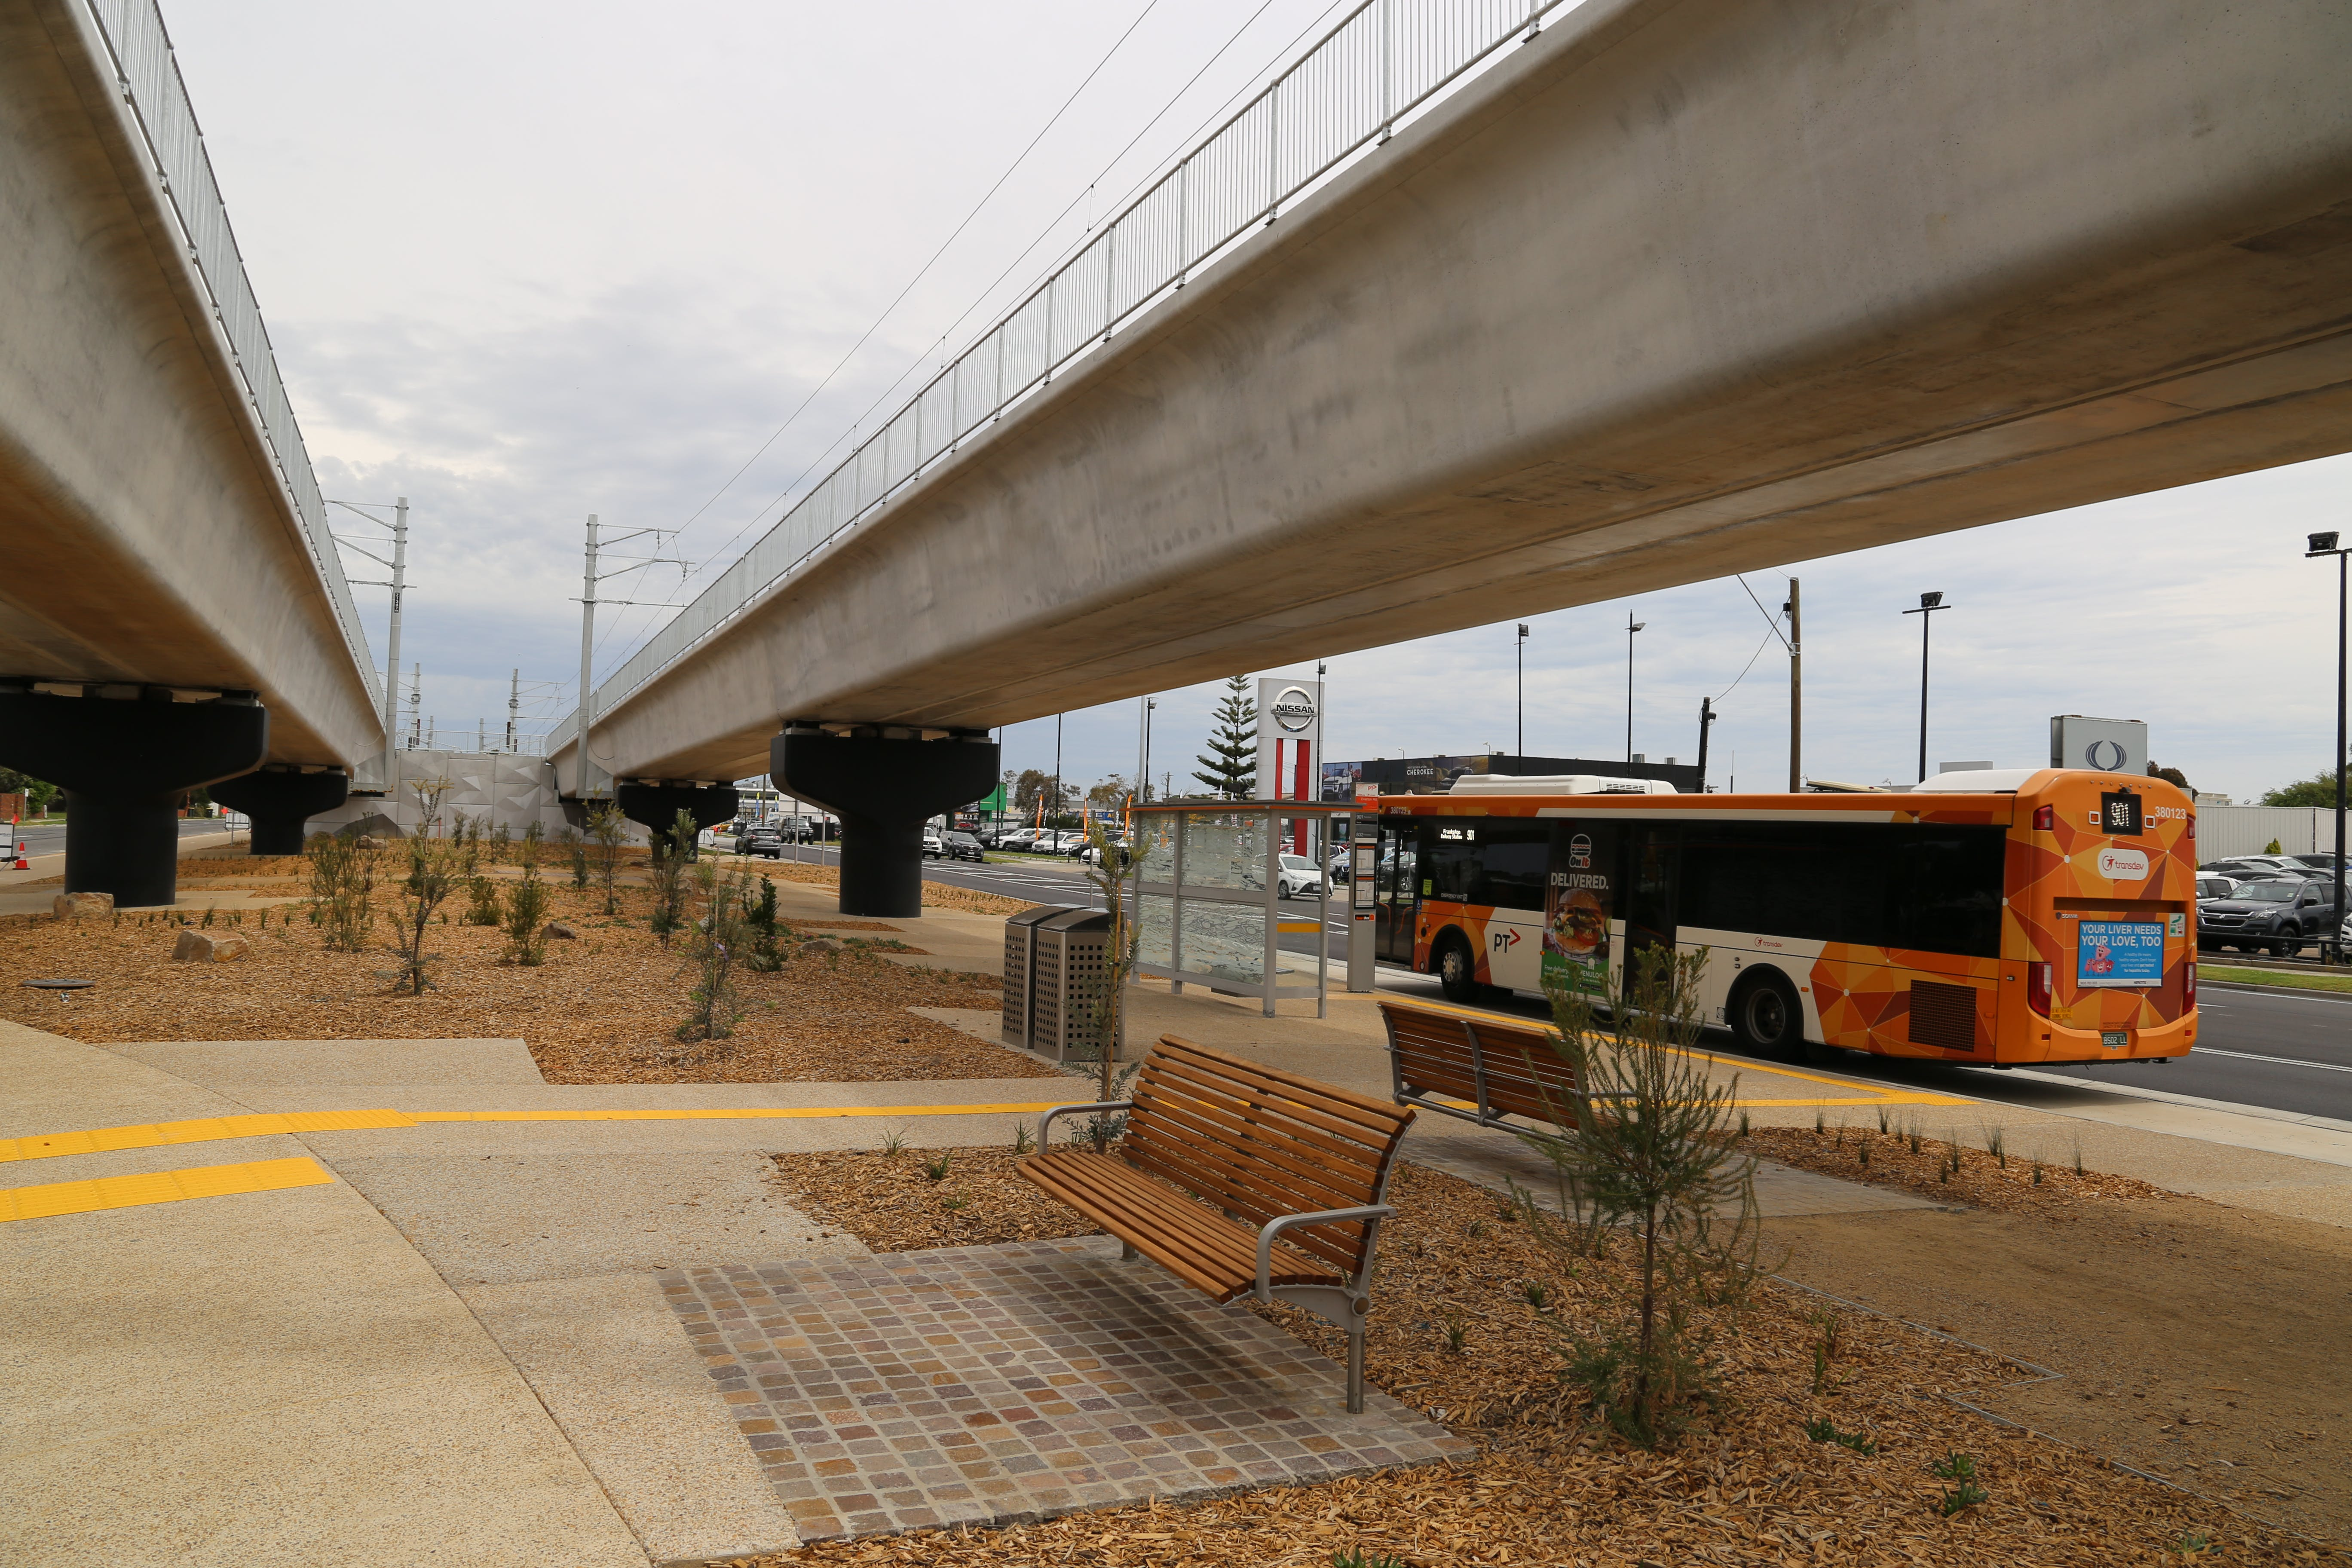 New landscaping underneath the Skye Overton rail bridge